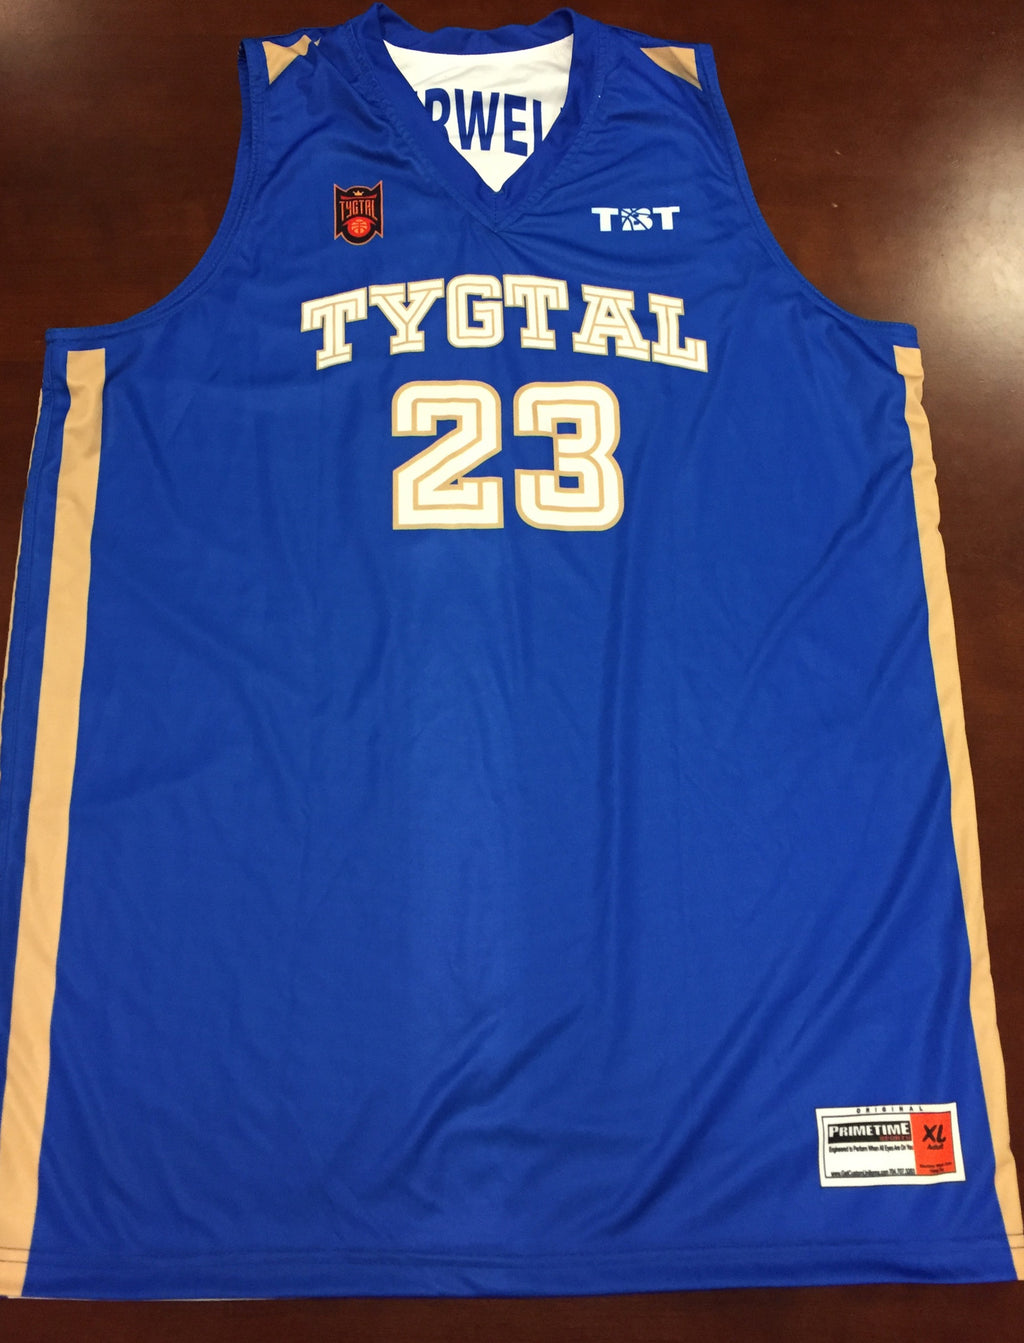 TYGTAL - 2015 Official Team Jersey